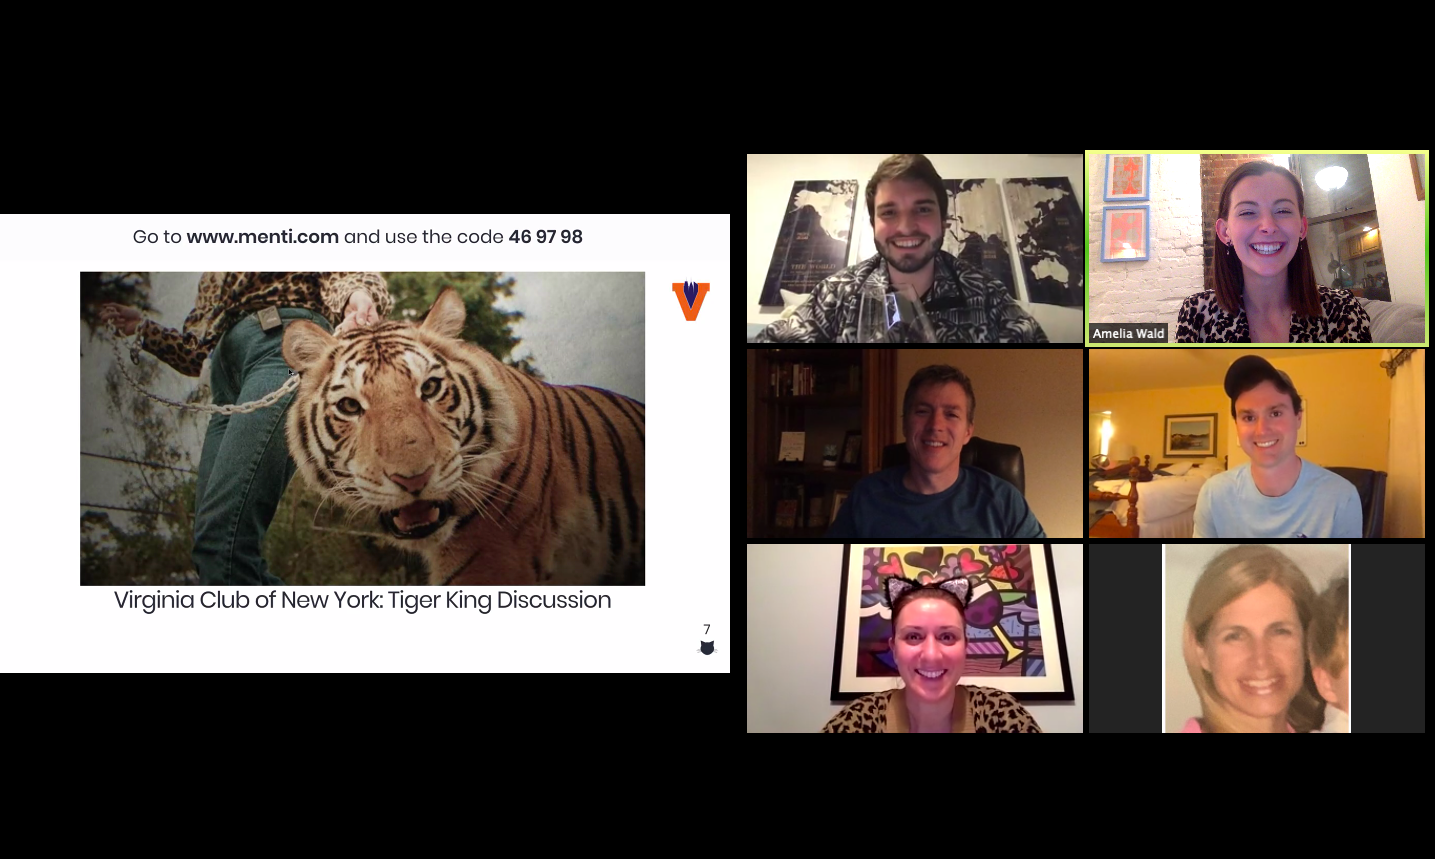 Virginia Club of New York Tiger King Discussion